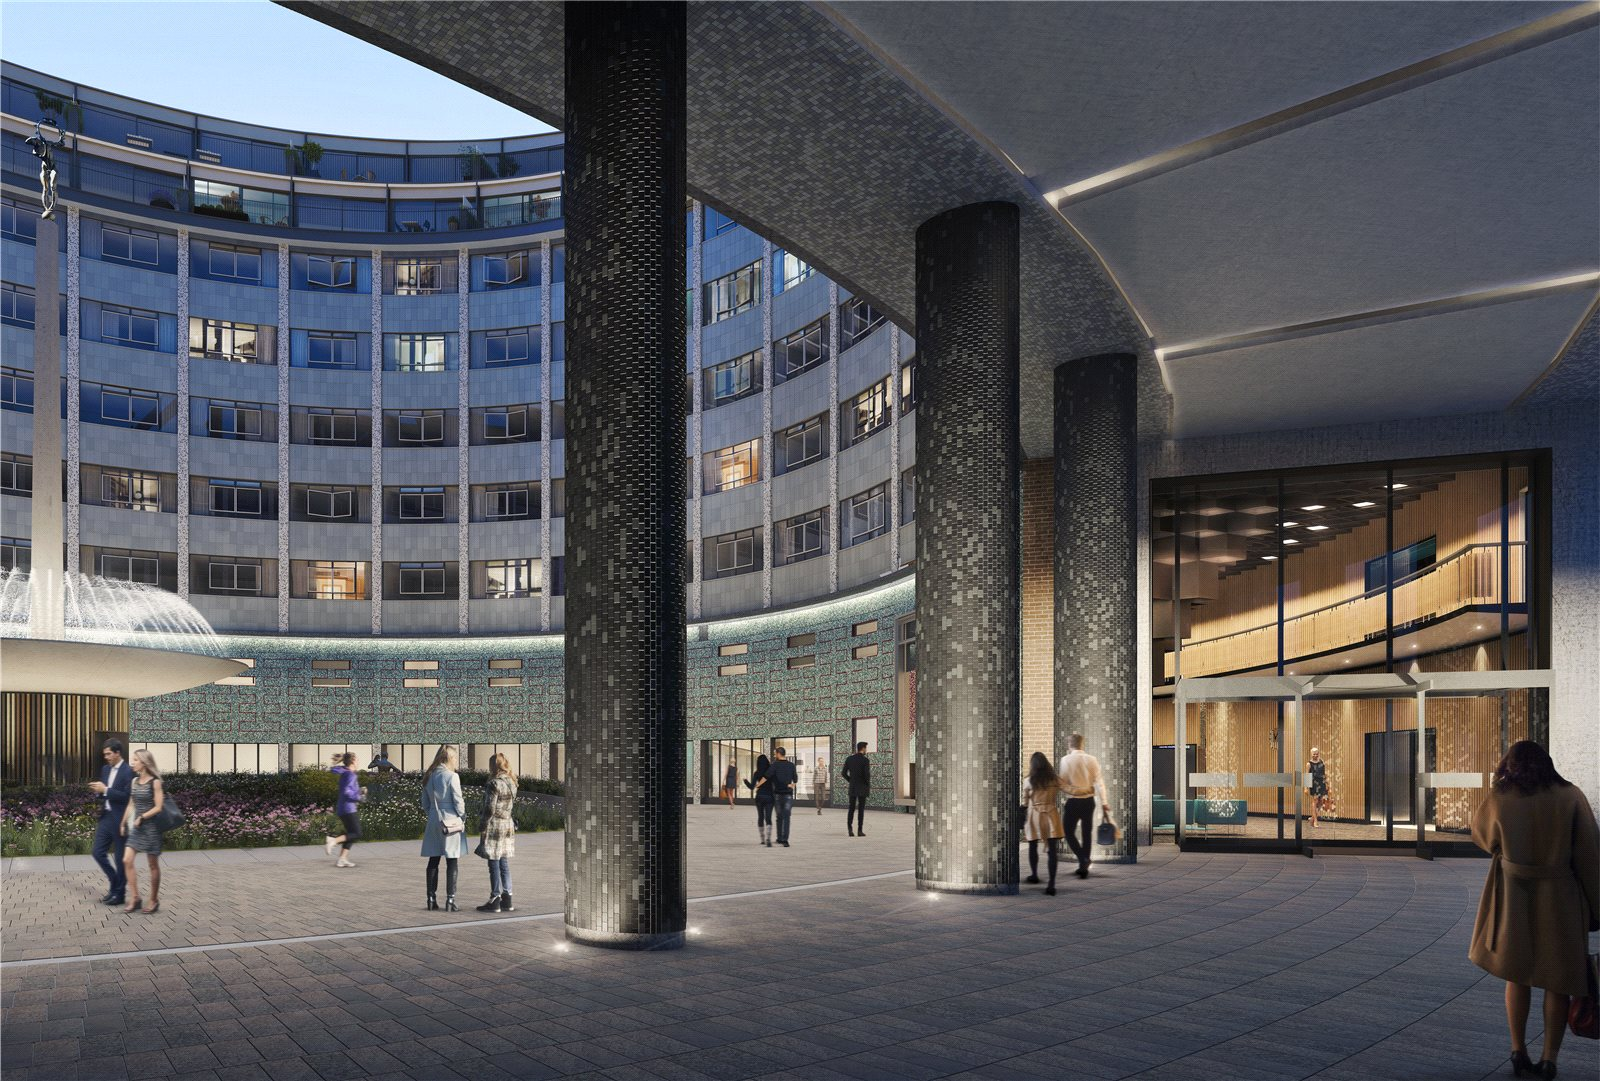 Additional photo for property listing at Television Centre, 101 Wood Lane, London, W12 London, Angleterre